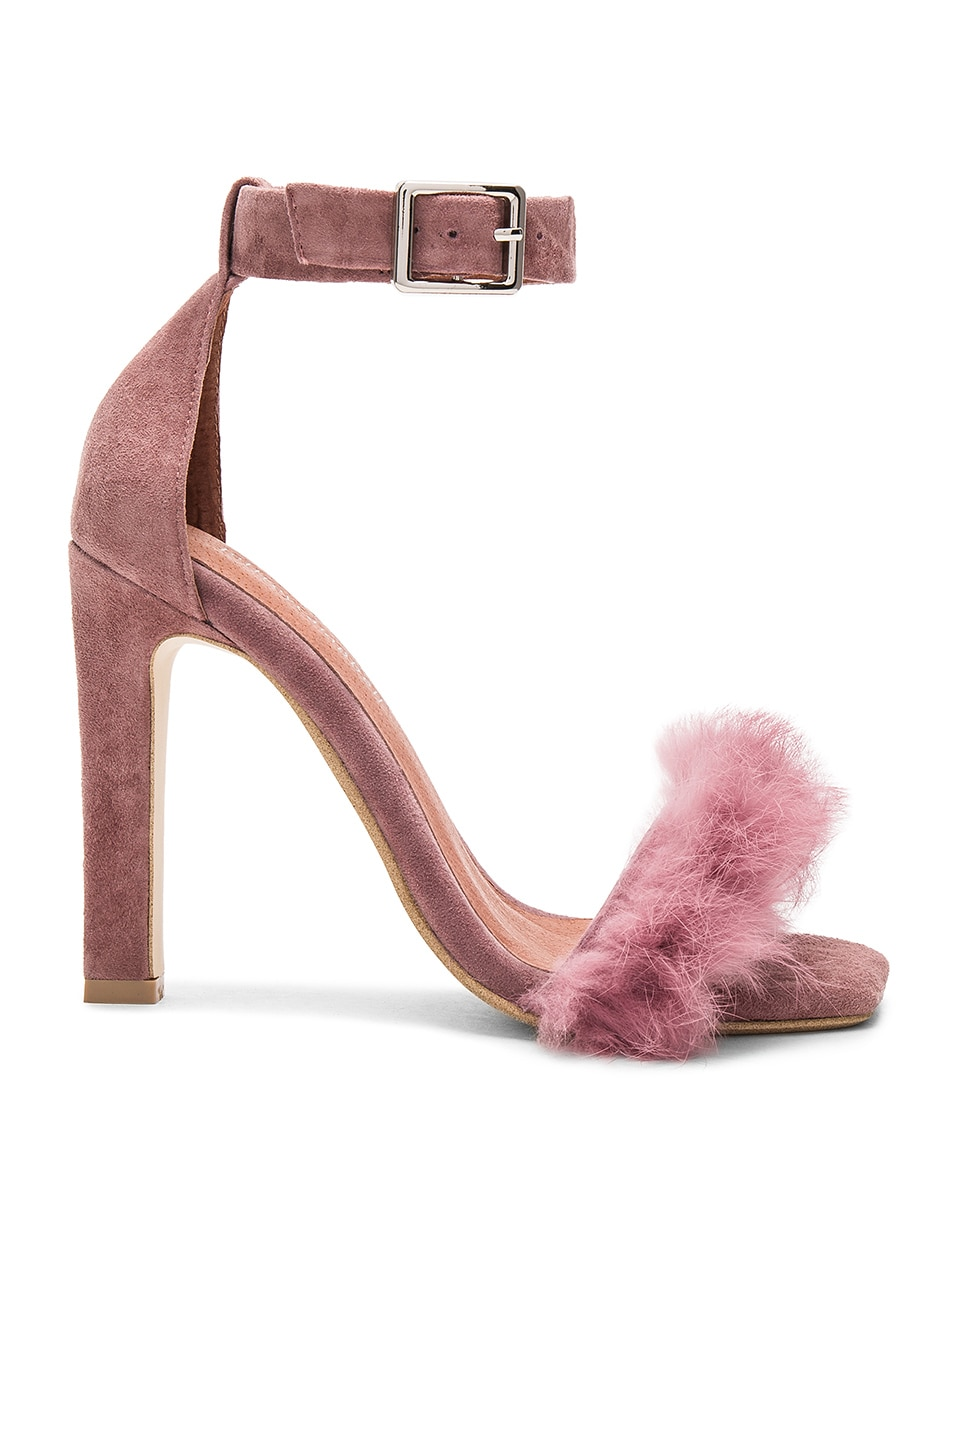 Jeffrey Campbell Obus FT Heels with Rabbit Fur in Dusty Rose Suede Combo